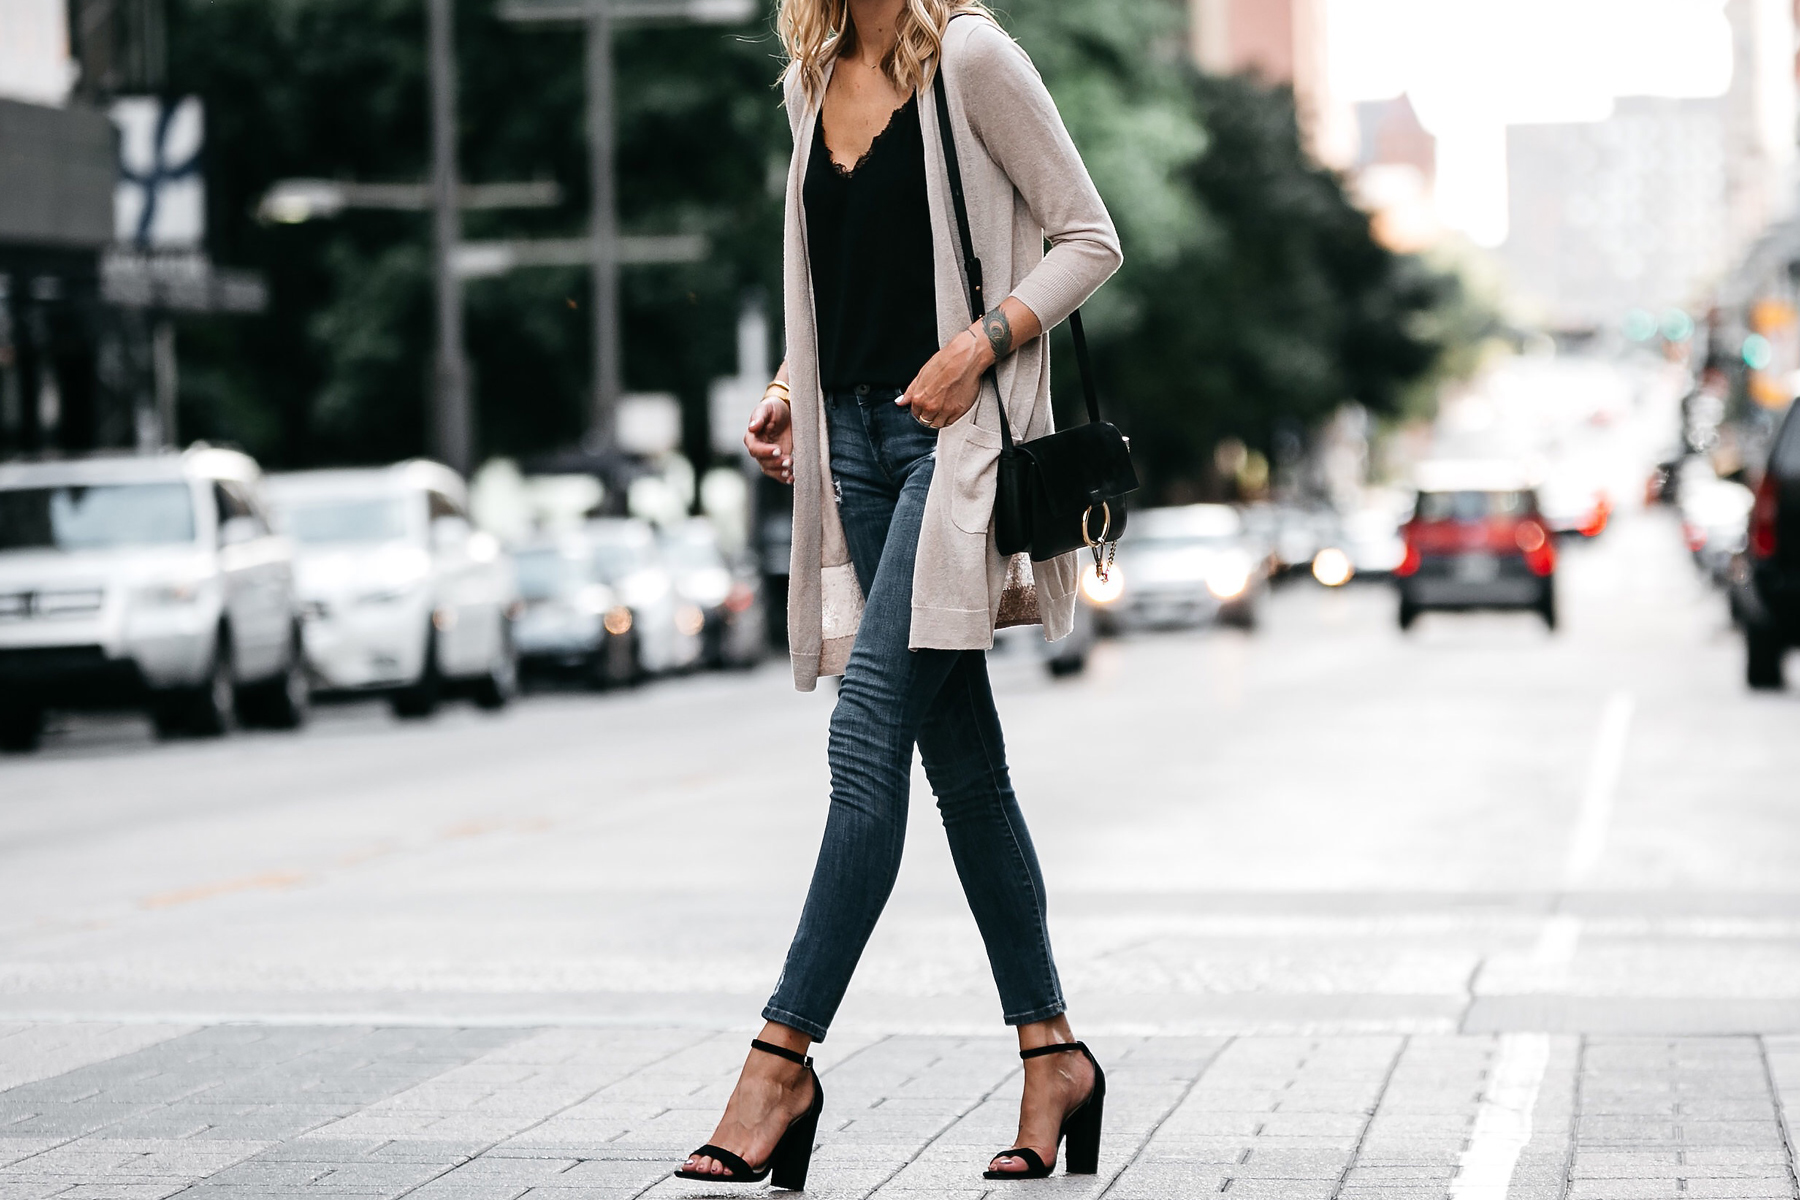 Long Tan Cardigan Black Lace Cami Denim Skinny Jeans Outfit Black Ankle Strap Heeled Sandals Chloe Faye Handbag Fashion Jackson Dallas Blogger Fashion Blogger